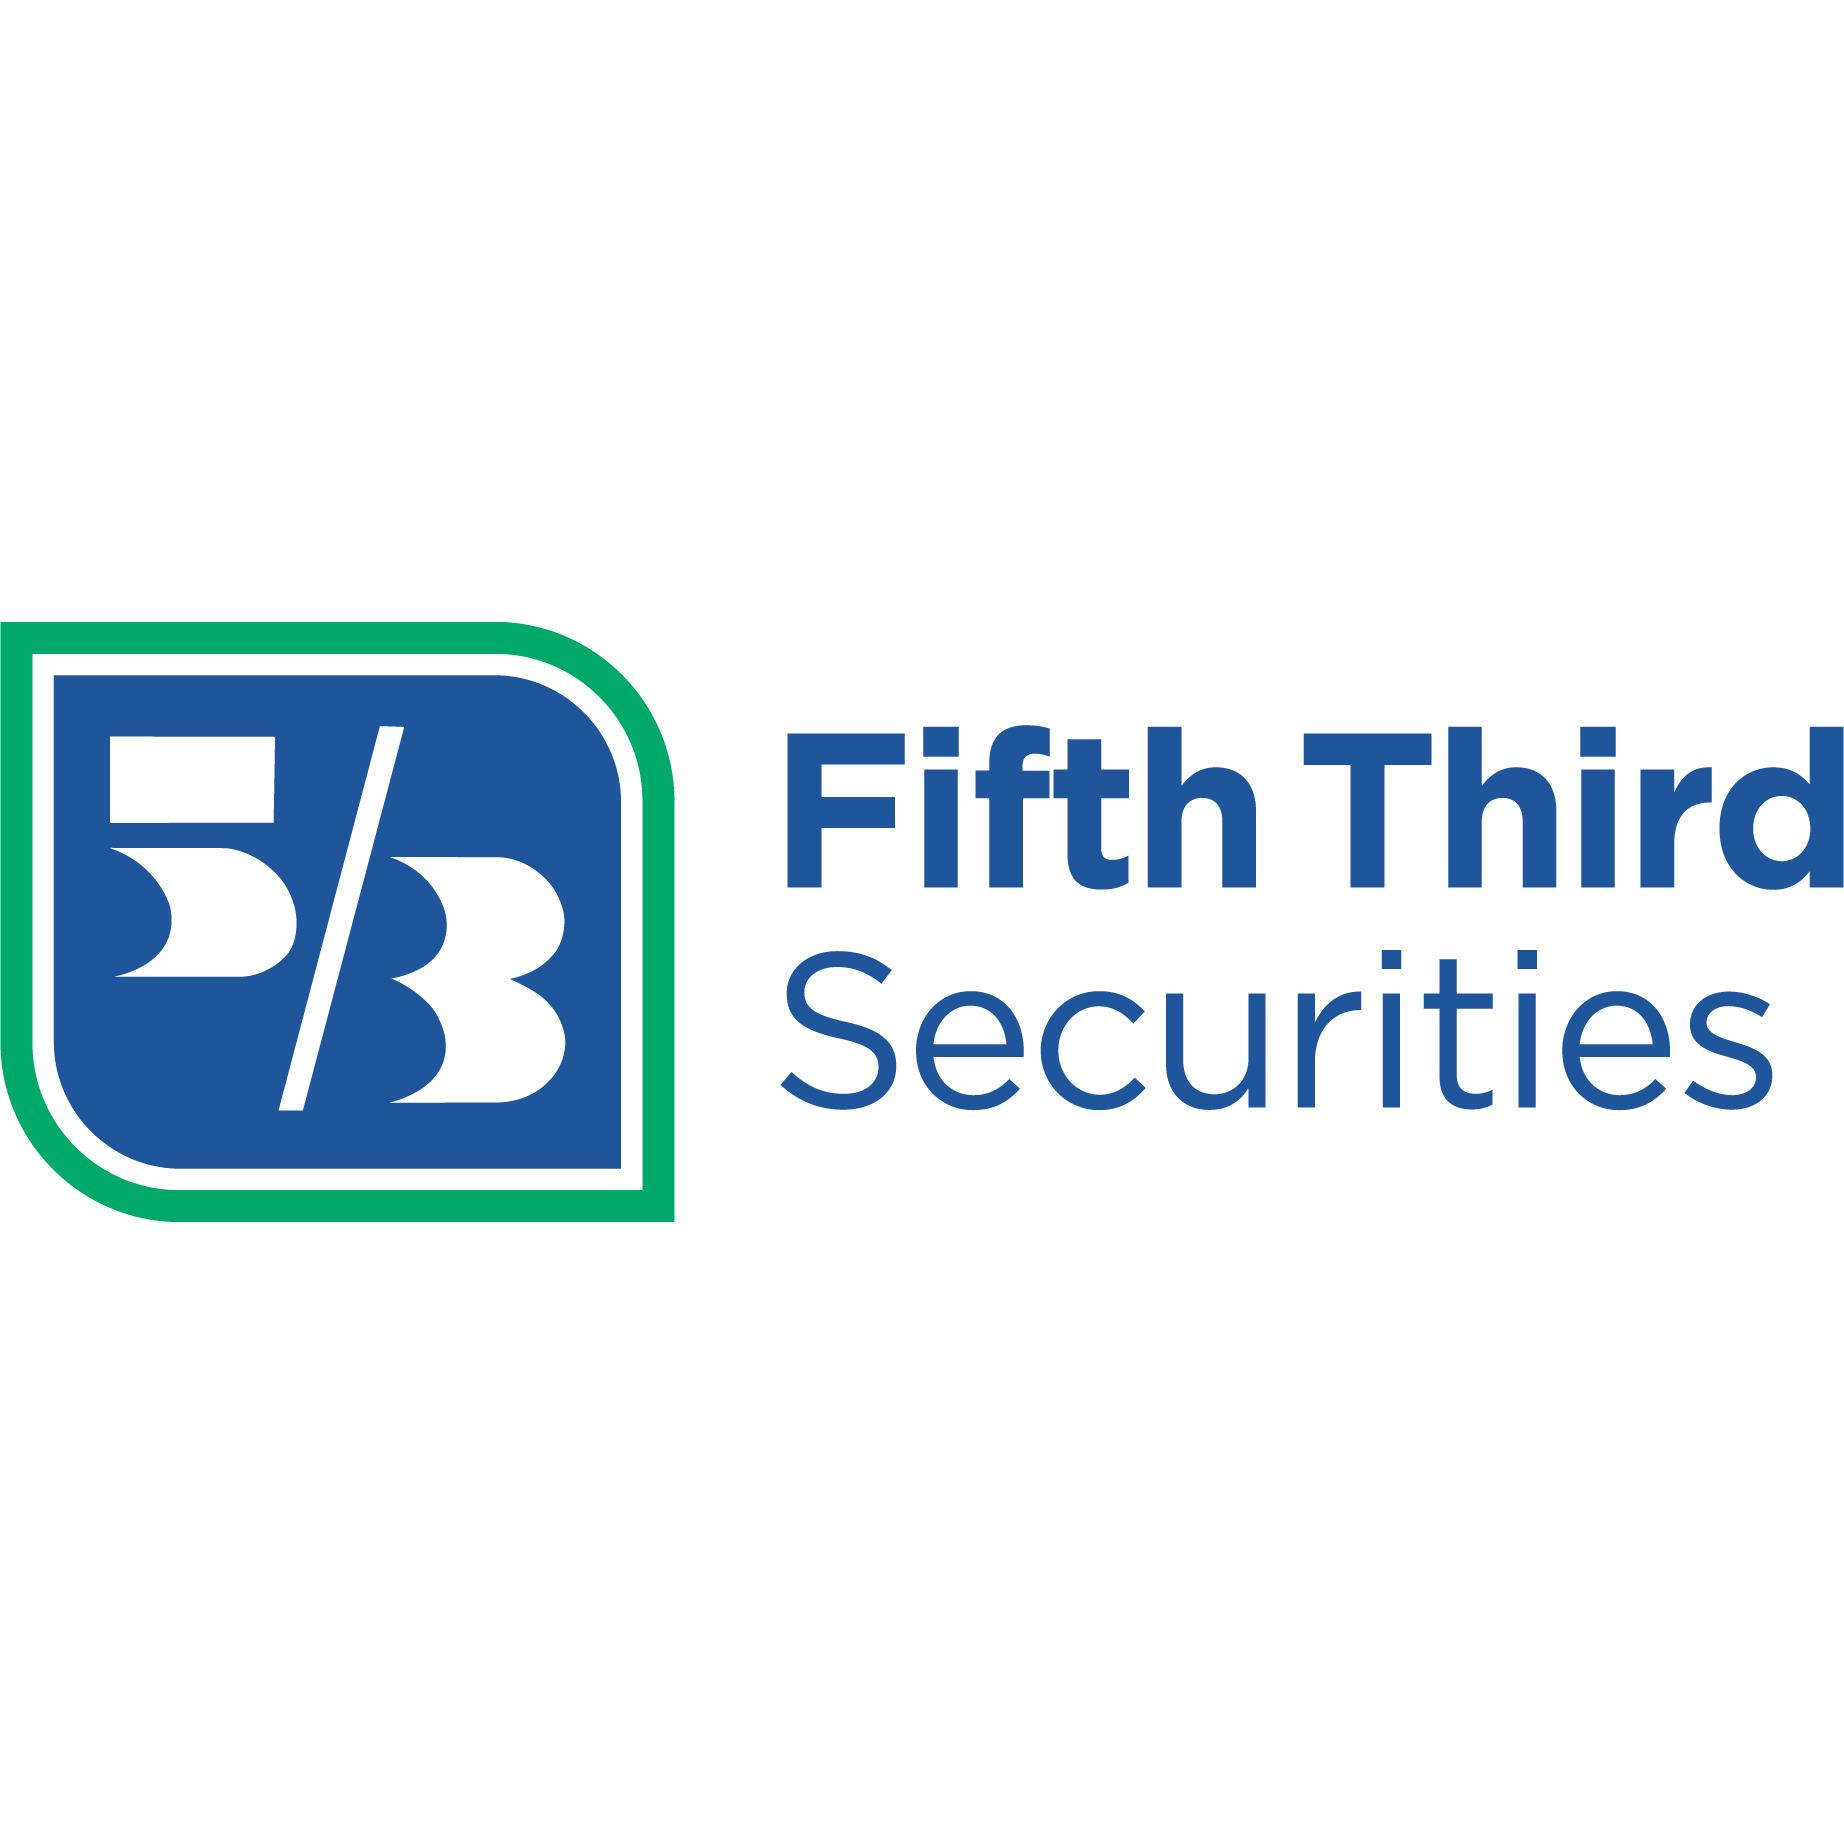 Fifth Third Securities - Thomas Matug